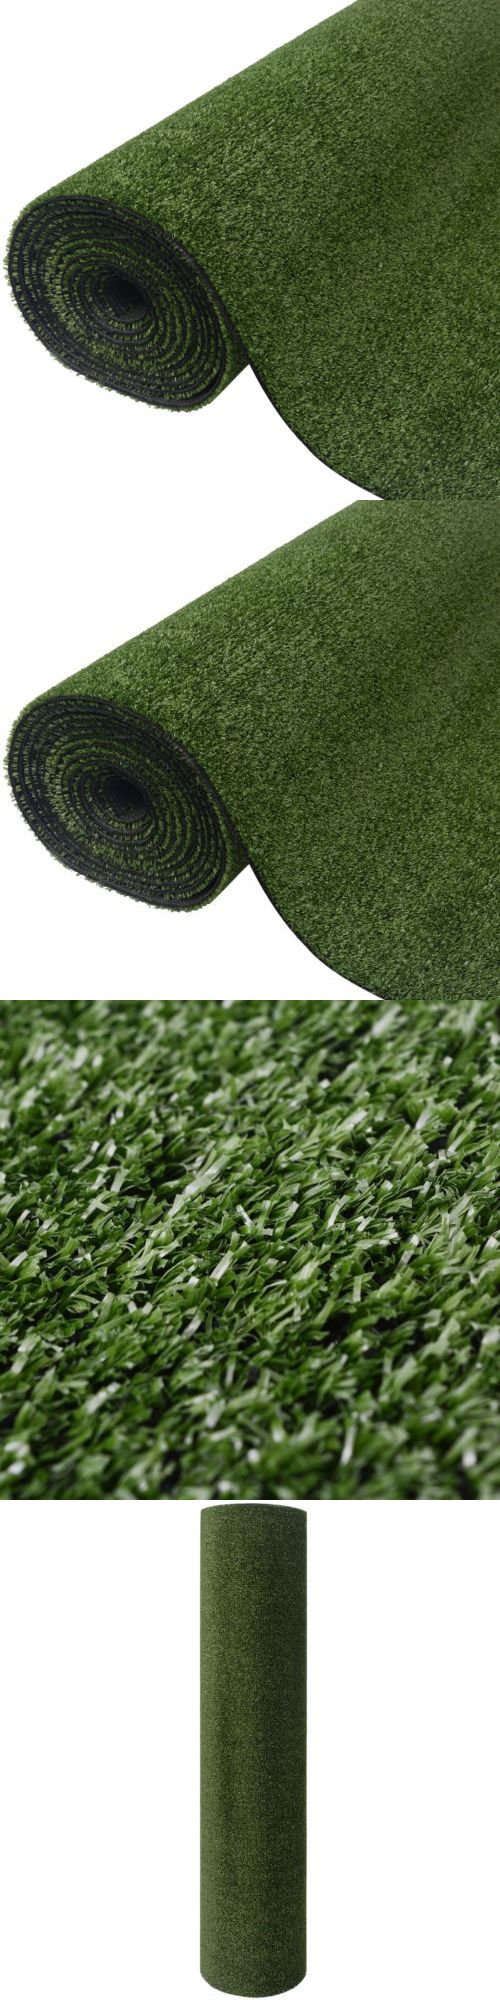 Synthetic Grass 181031: Vidaxl Artificial Grass Mat Garden Lawn Fake Grasses Uv-Resistant 3.3 X 49.2 Ft -> BUY IT NOW ONLY: $74.99 on eBay!